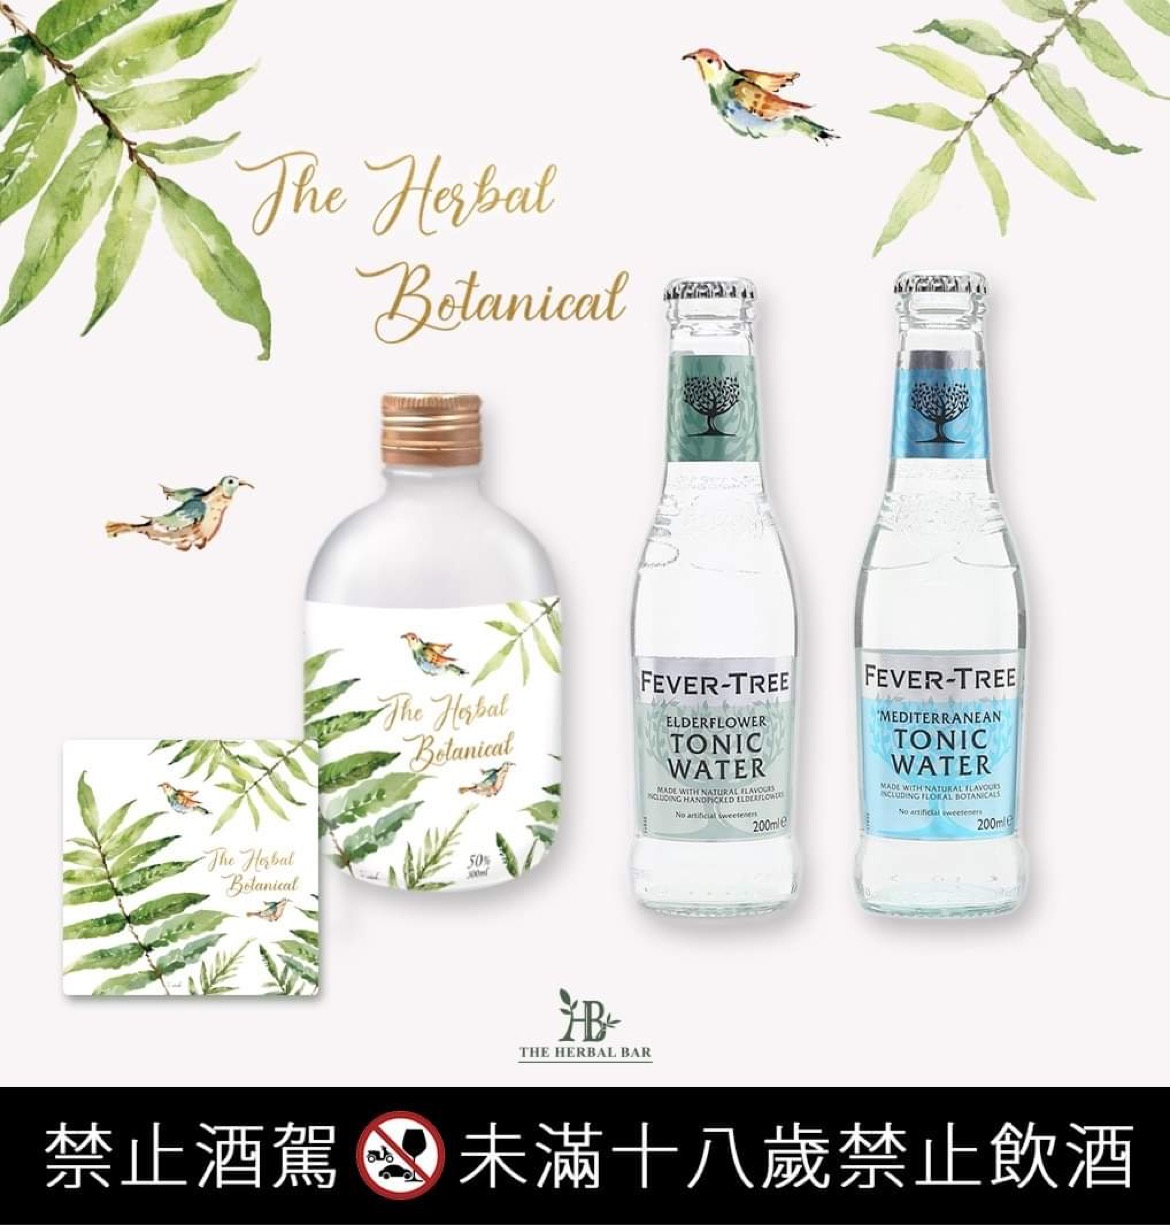 """Featured image for """"The Herbal Botanical 鳥不踏植物蒸餾酒調酒組合禮盒"""""""